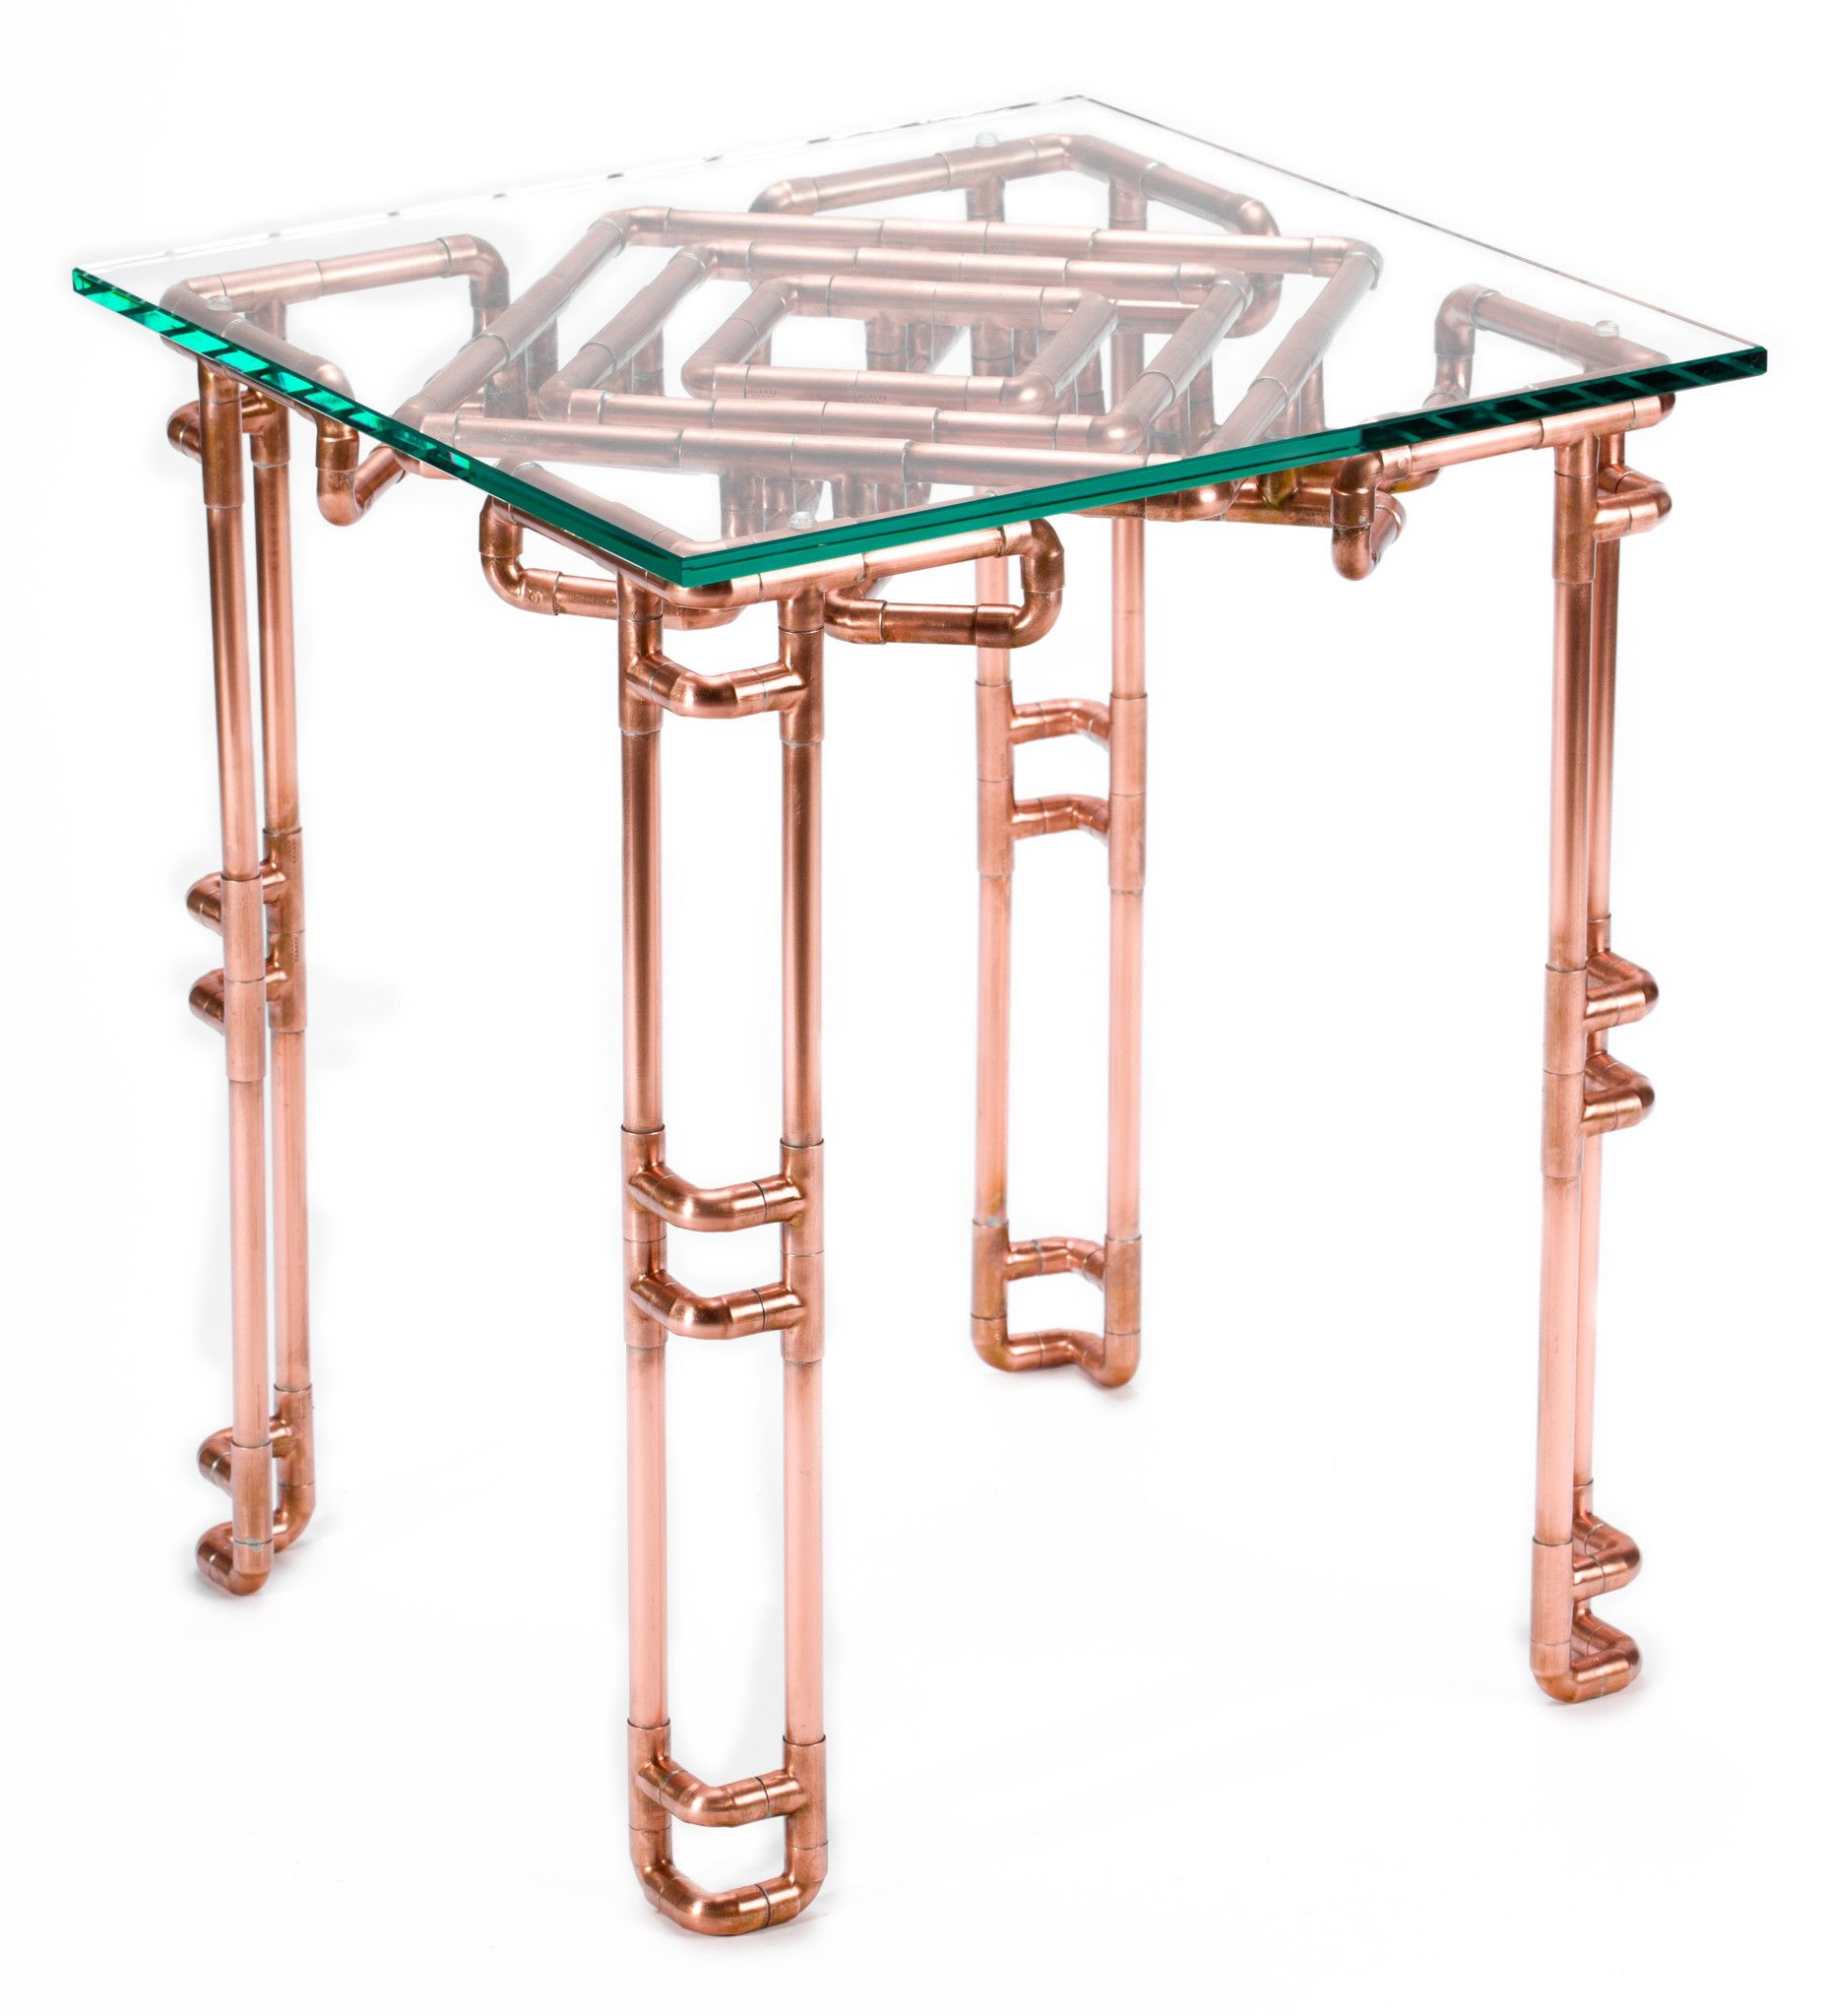 Gumtree Copper Coffee Table: Copper Pipe Coffee Table